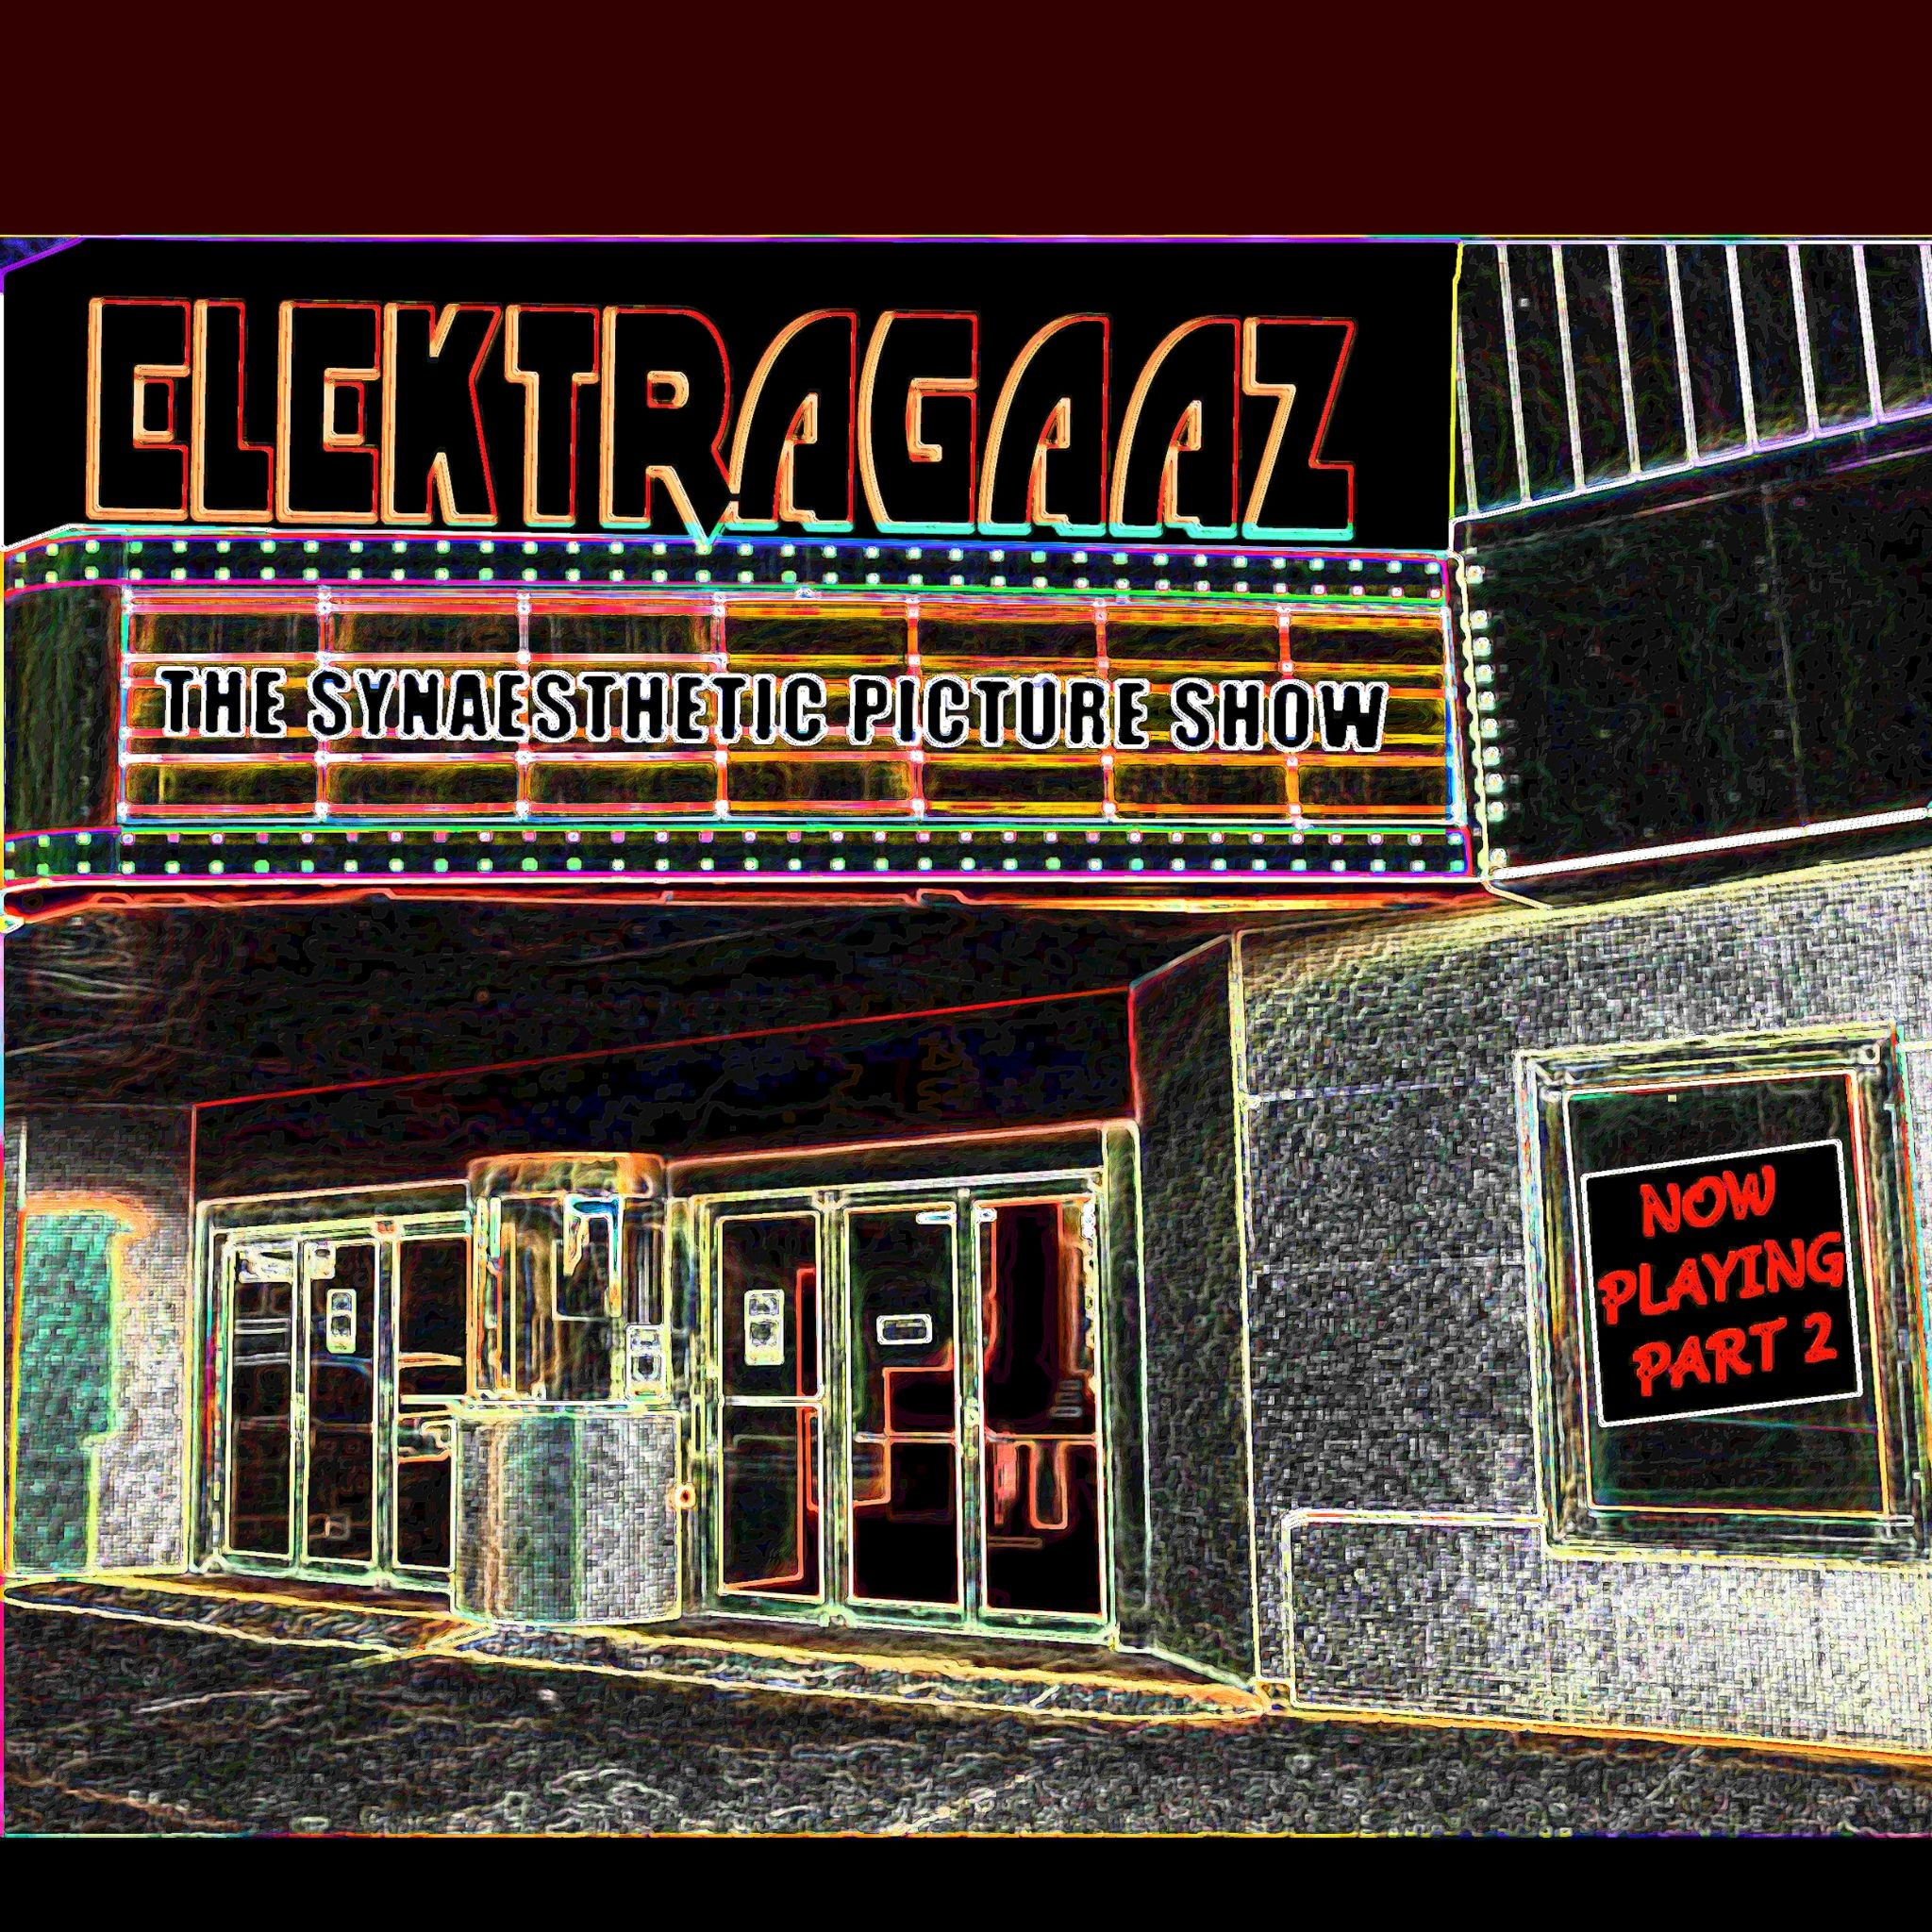 Elektragaaz unveils 'The Synaesthetic Picture Show Now Playing, Pt. 2'